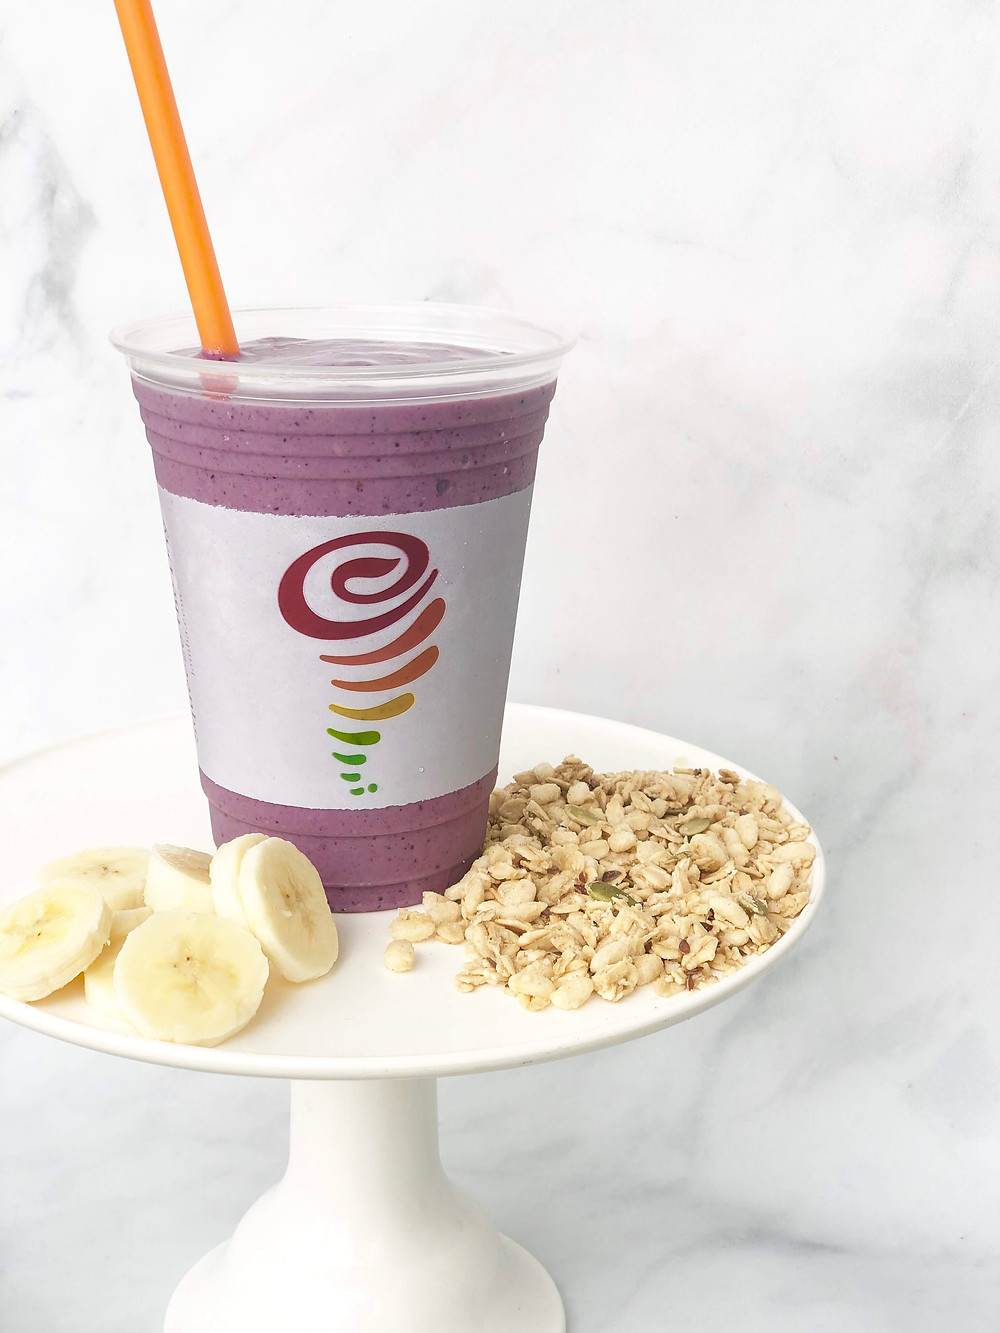 A smoothie on a platter with banana and oats.